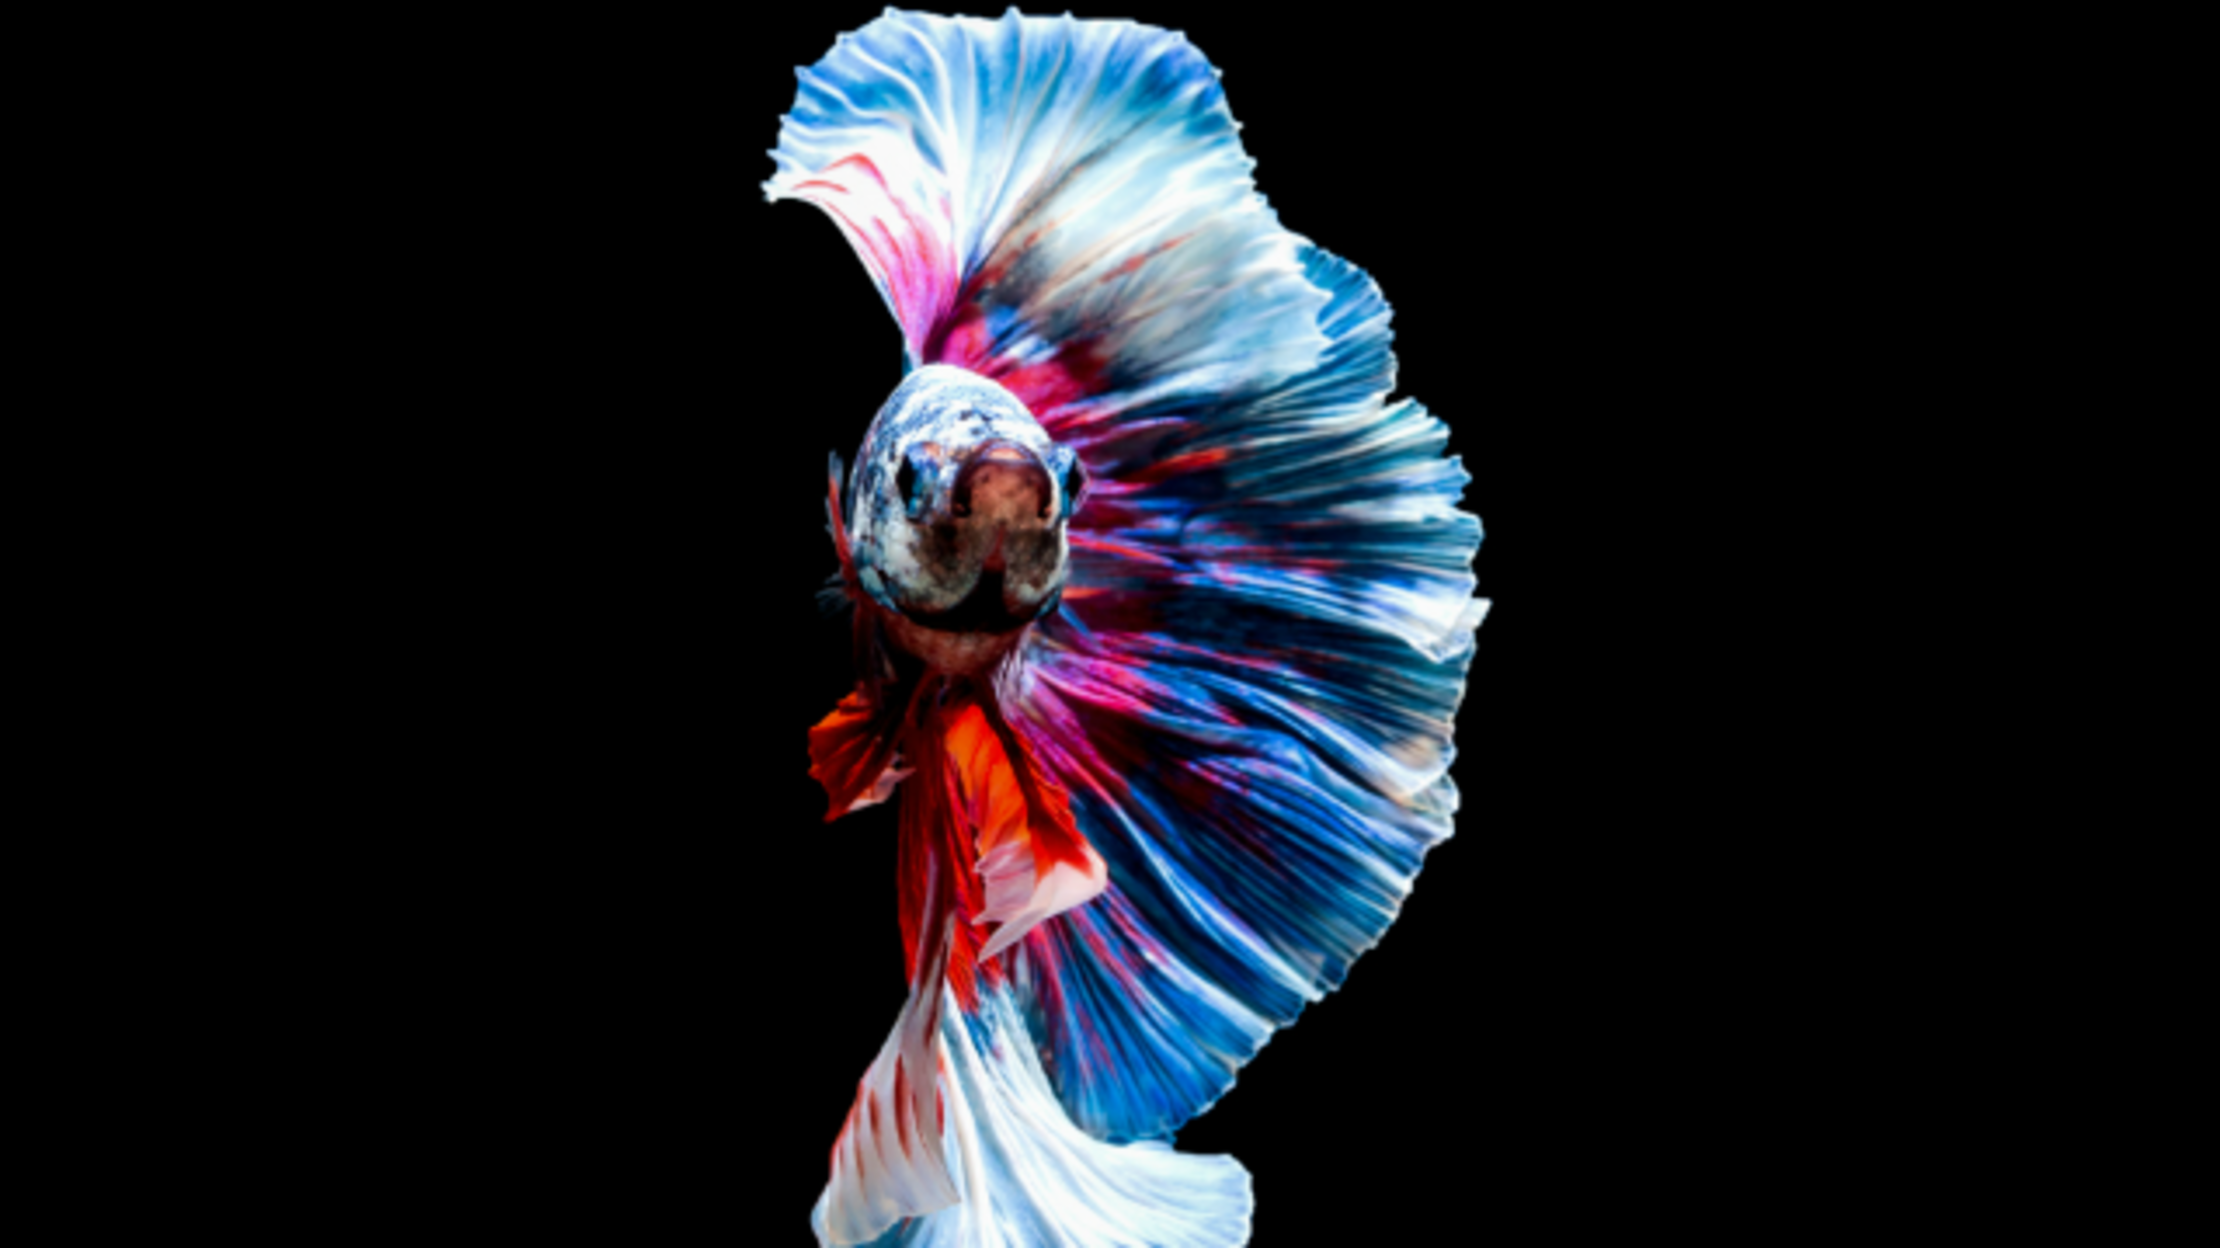 15 Fighting Facts About Siamese Fighting Fish | Mental Floss